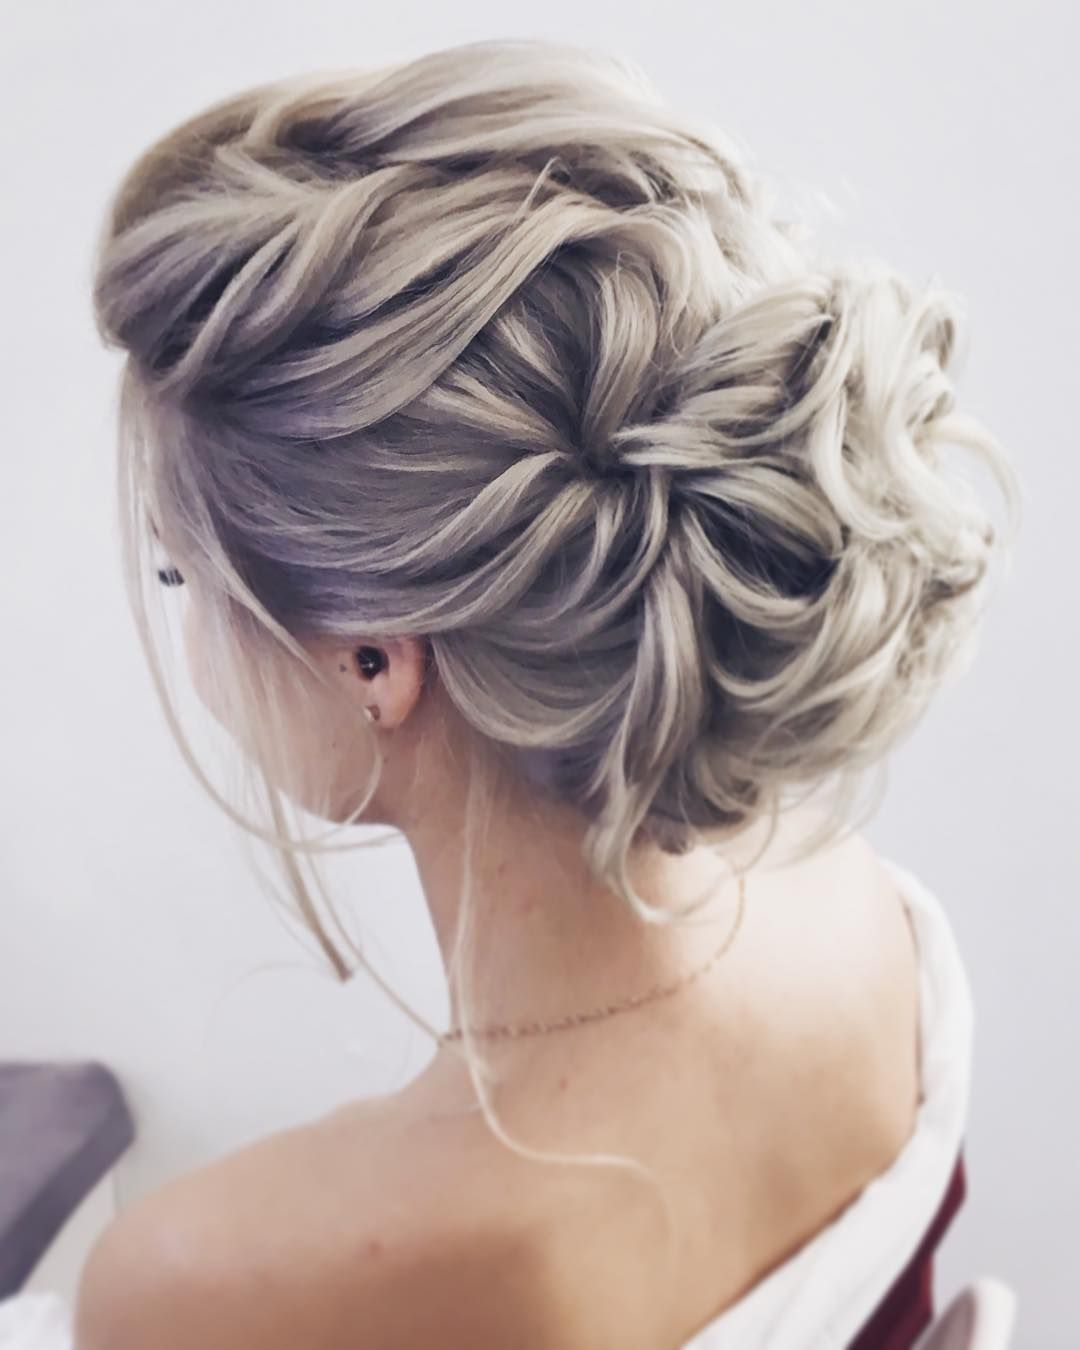 Gorgeous Feminine Wedding Hairstyles For Long hair  Hairstyles  Wedding hairstyles for long